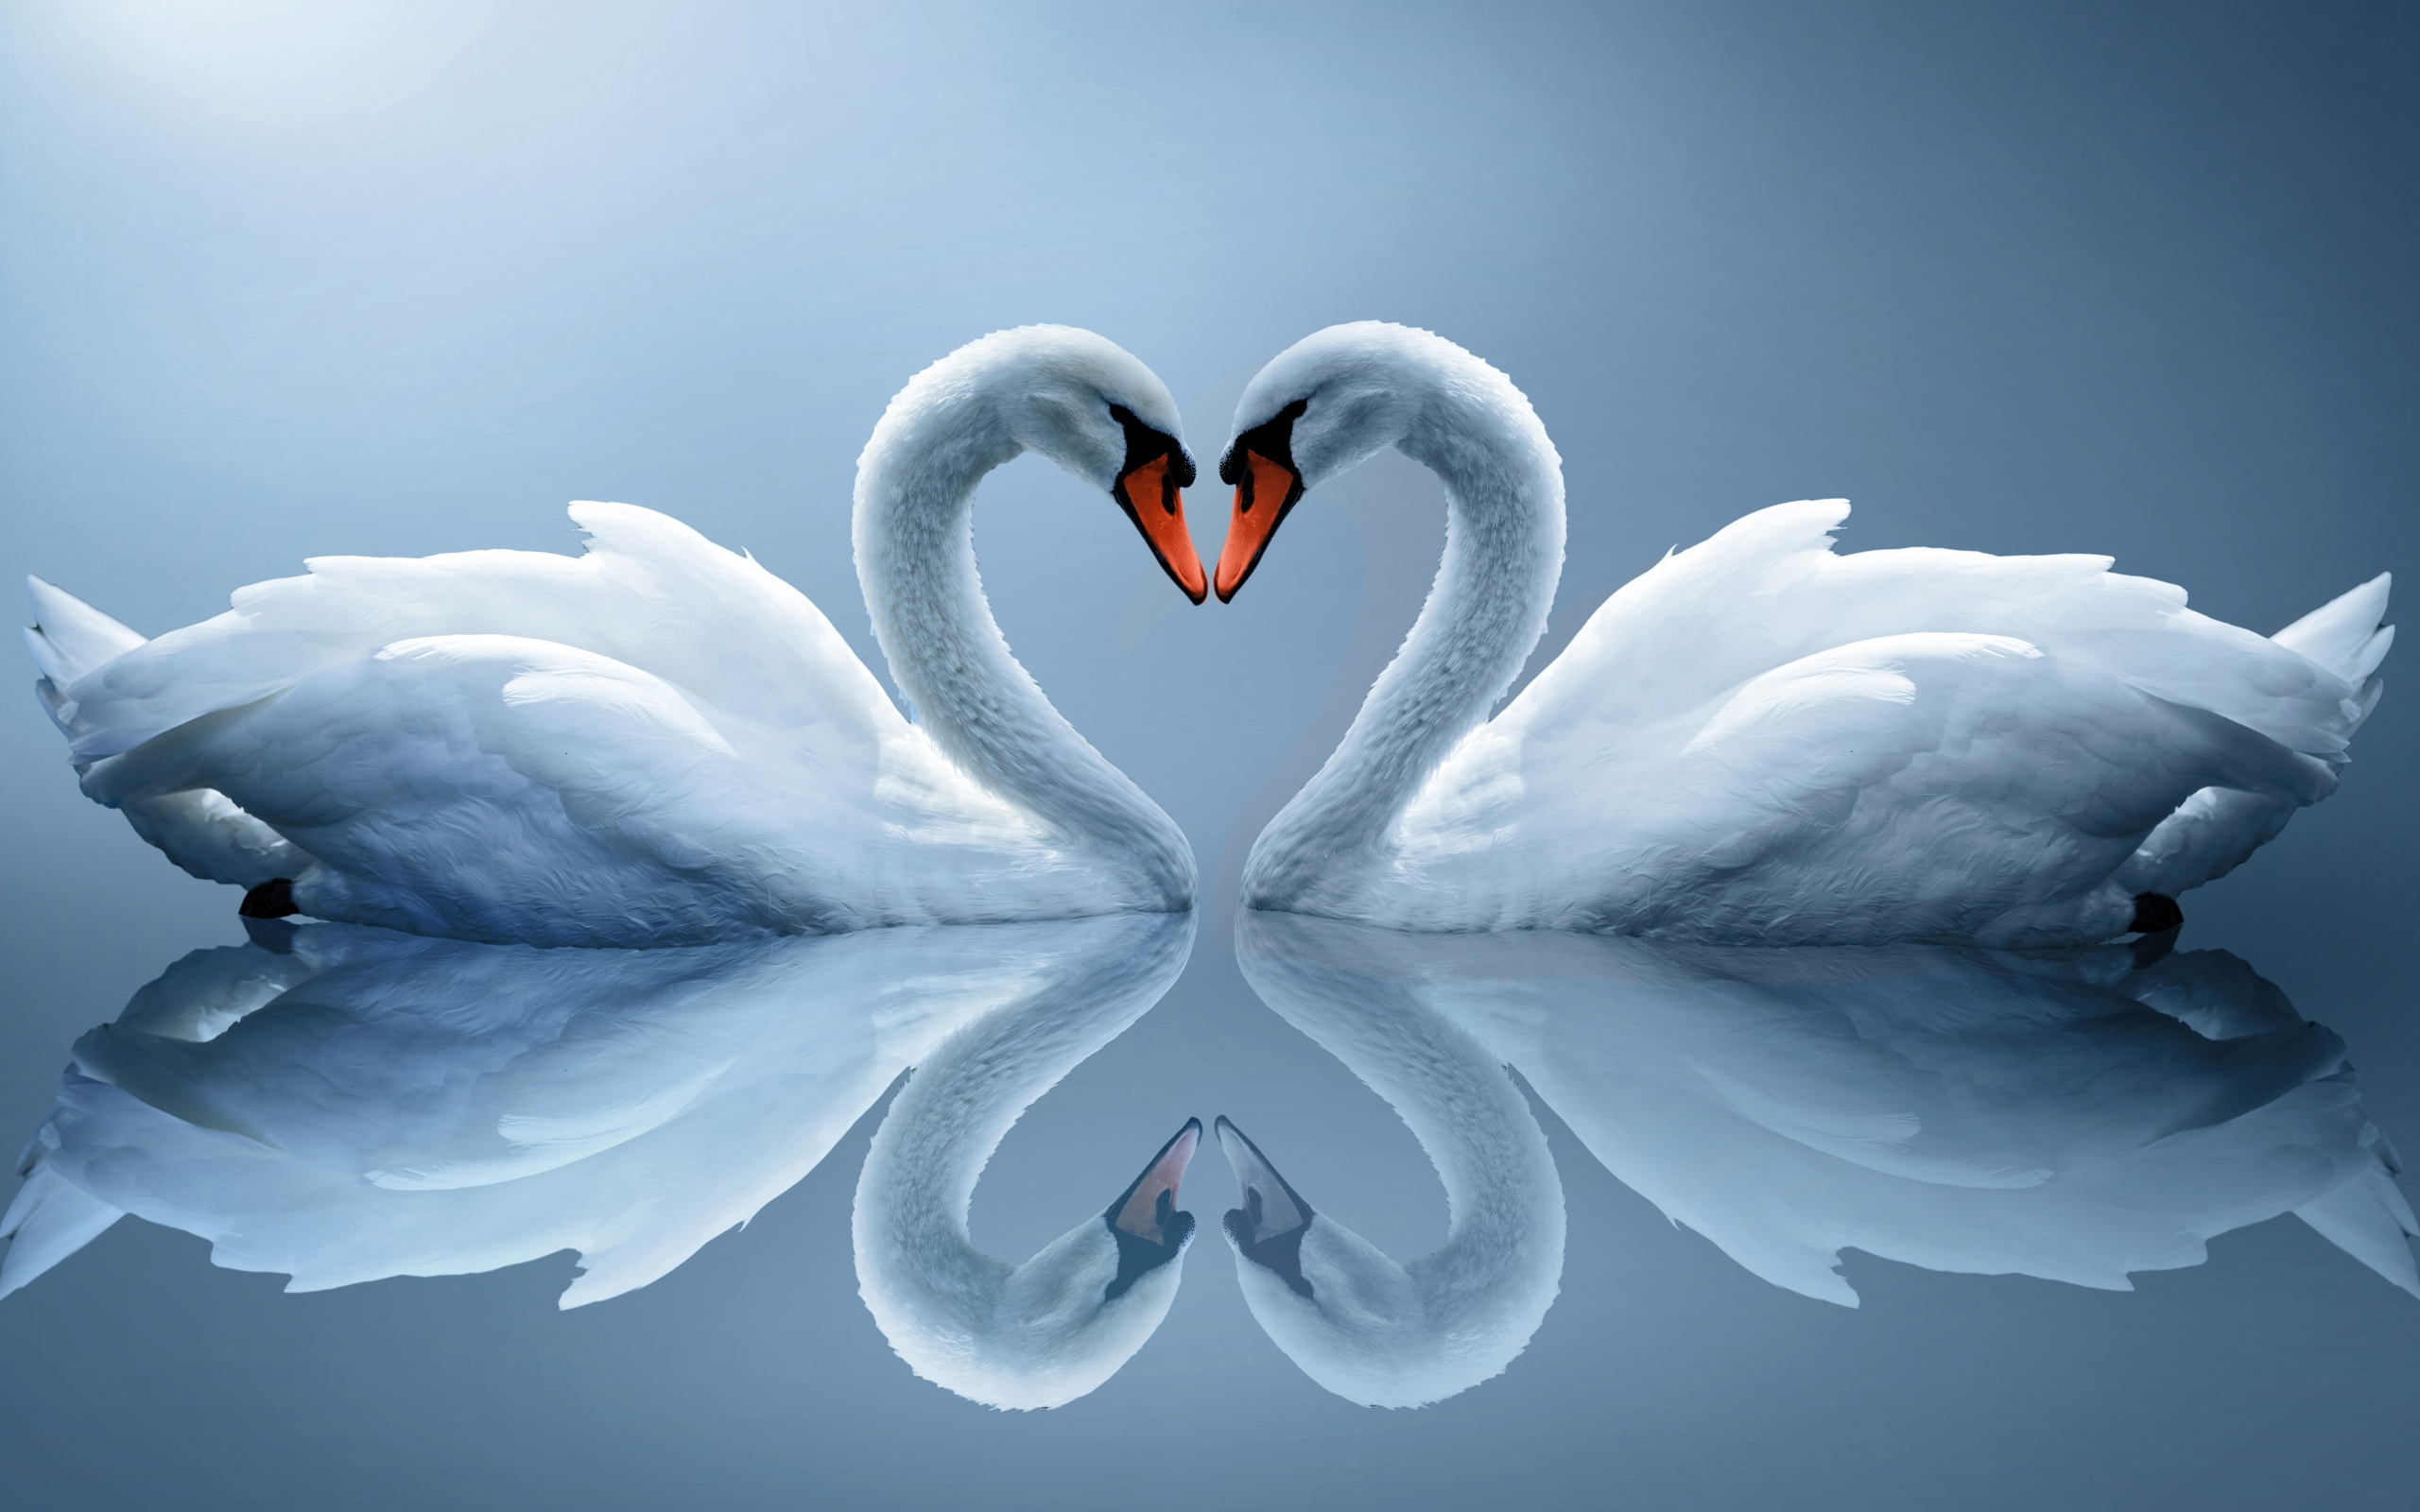 Images Of Love, Couple of Swans 232.02 Kb